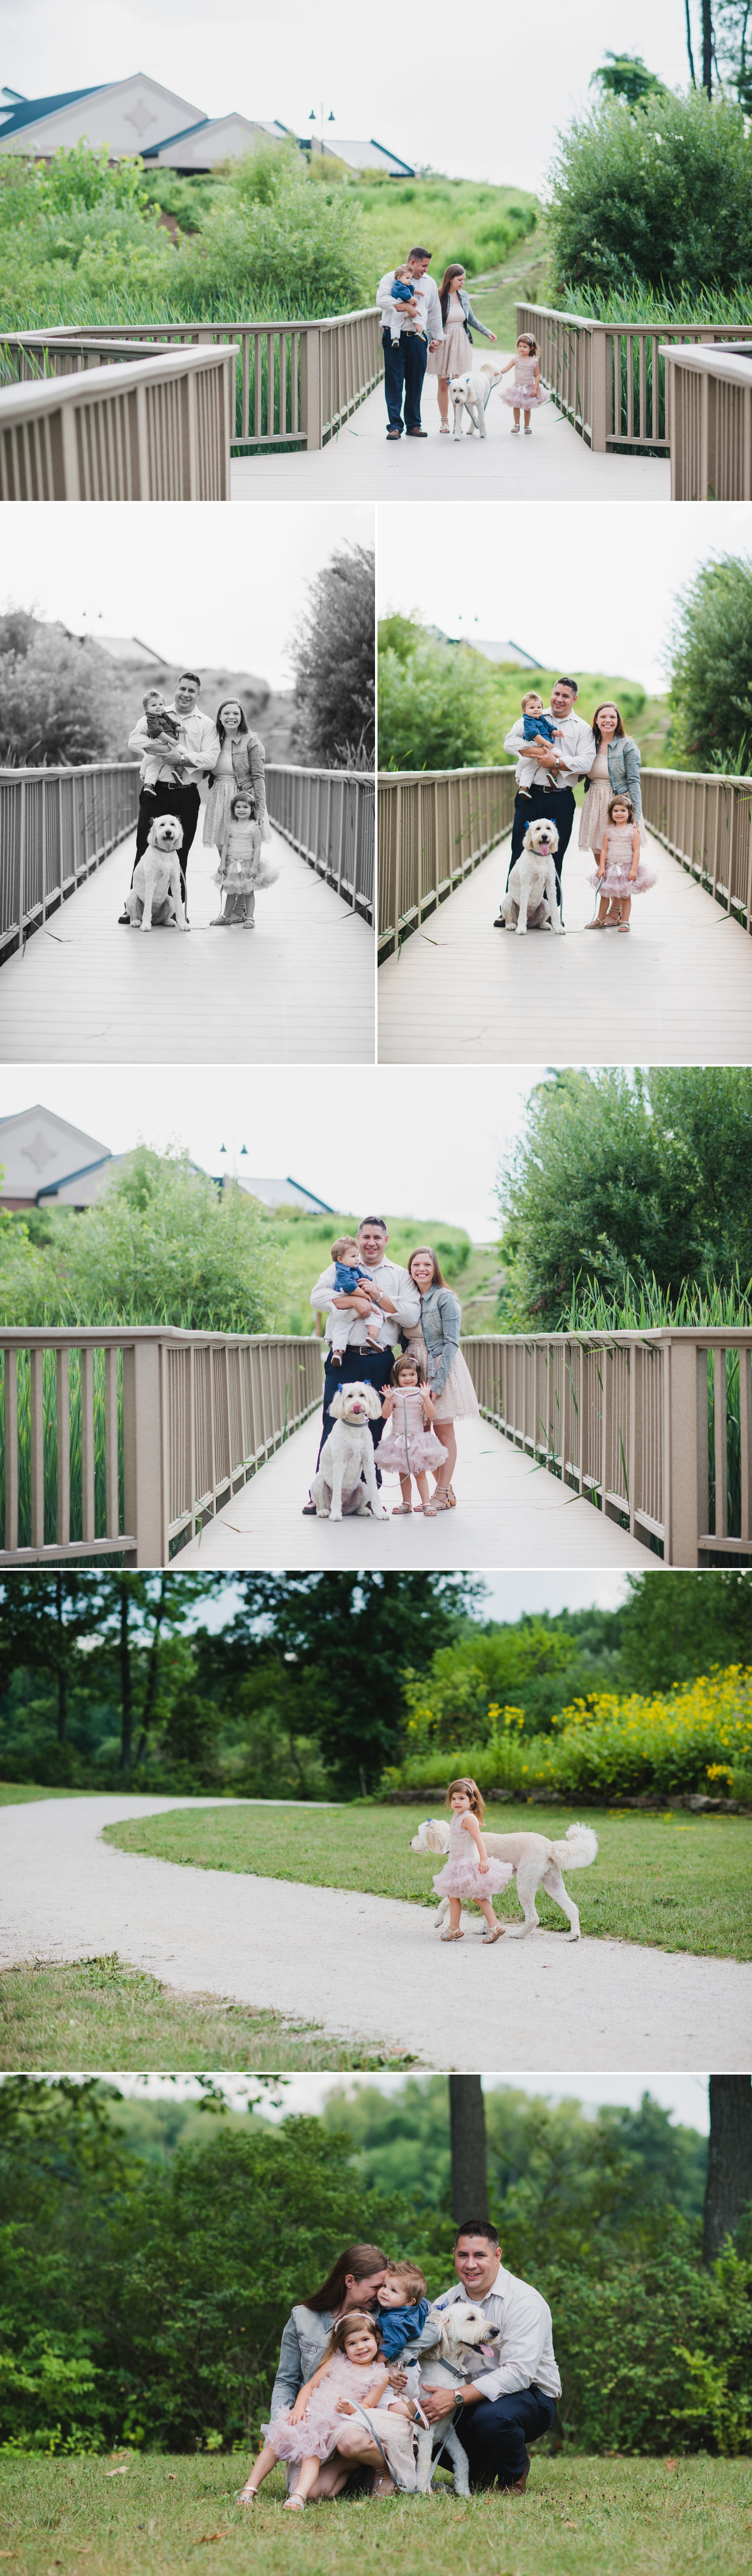 Ashleigh Saylor Photography Canton Ohio family photos 2.jpg